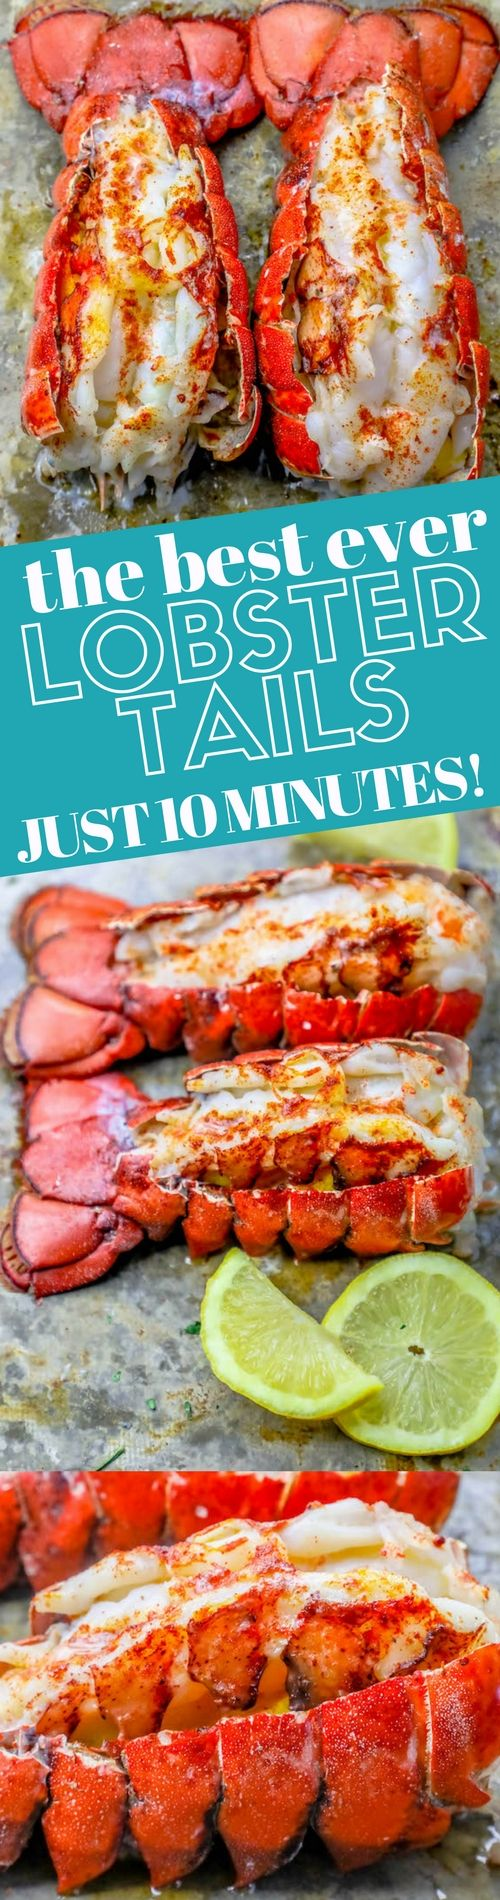 2474 best Seafood images on Pinterest | Baked lobster tails, Broiled ...